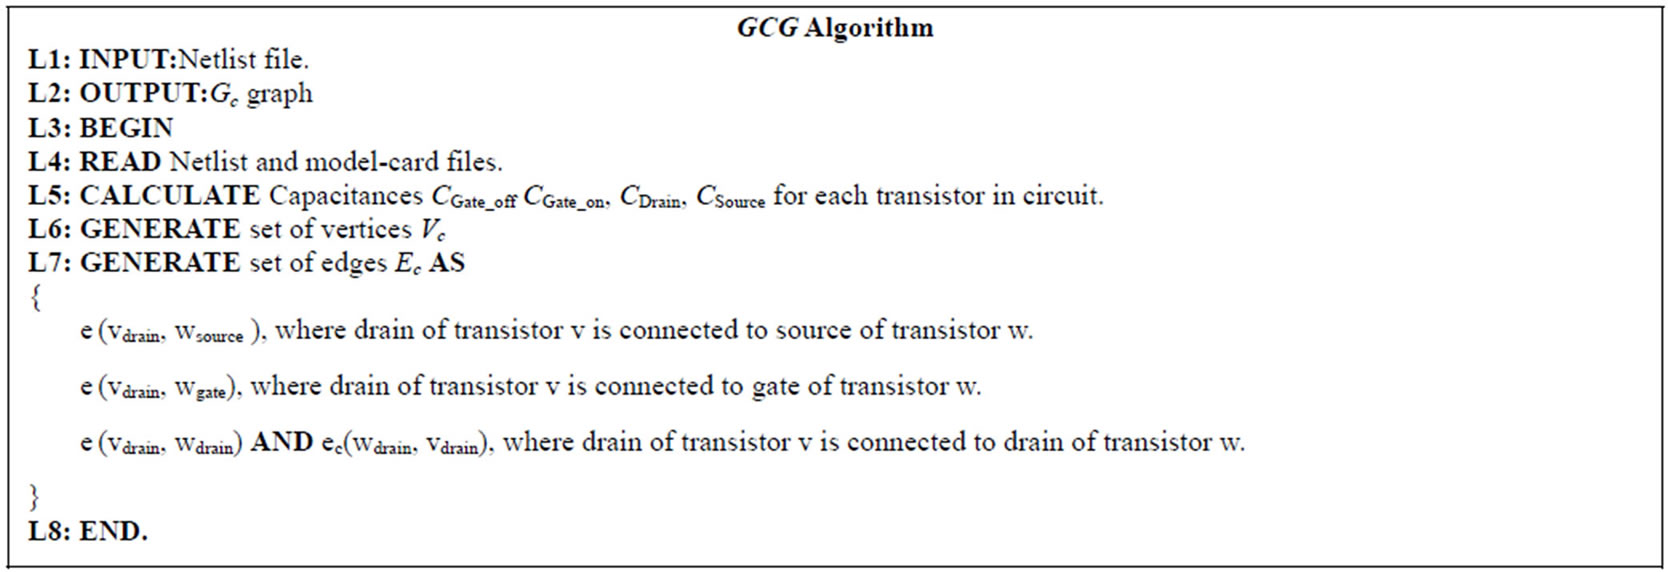 Graph Modeling For Static Timing Analysis At Transistor Level In Transistors How Circuit Works Electrical Engineering Stack Figure 2 Gcg Algorithm Of Gc Generation